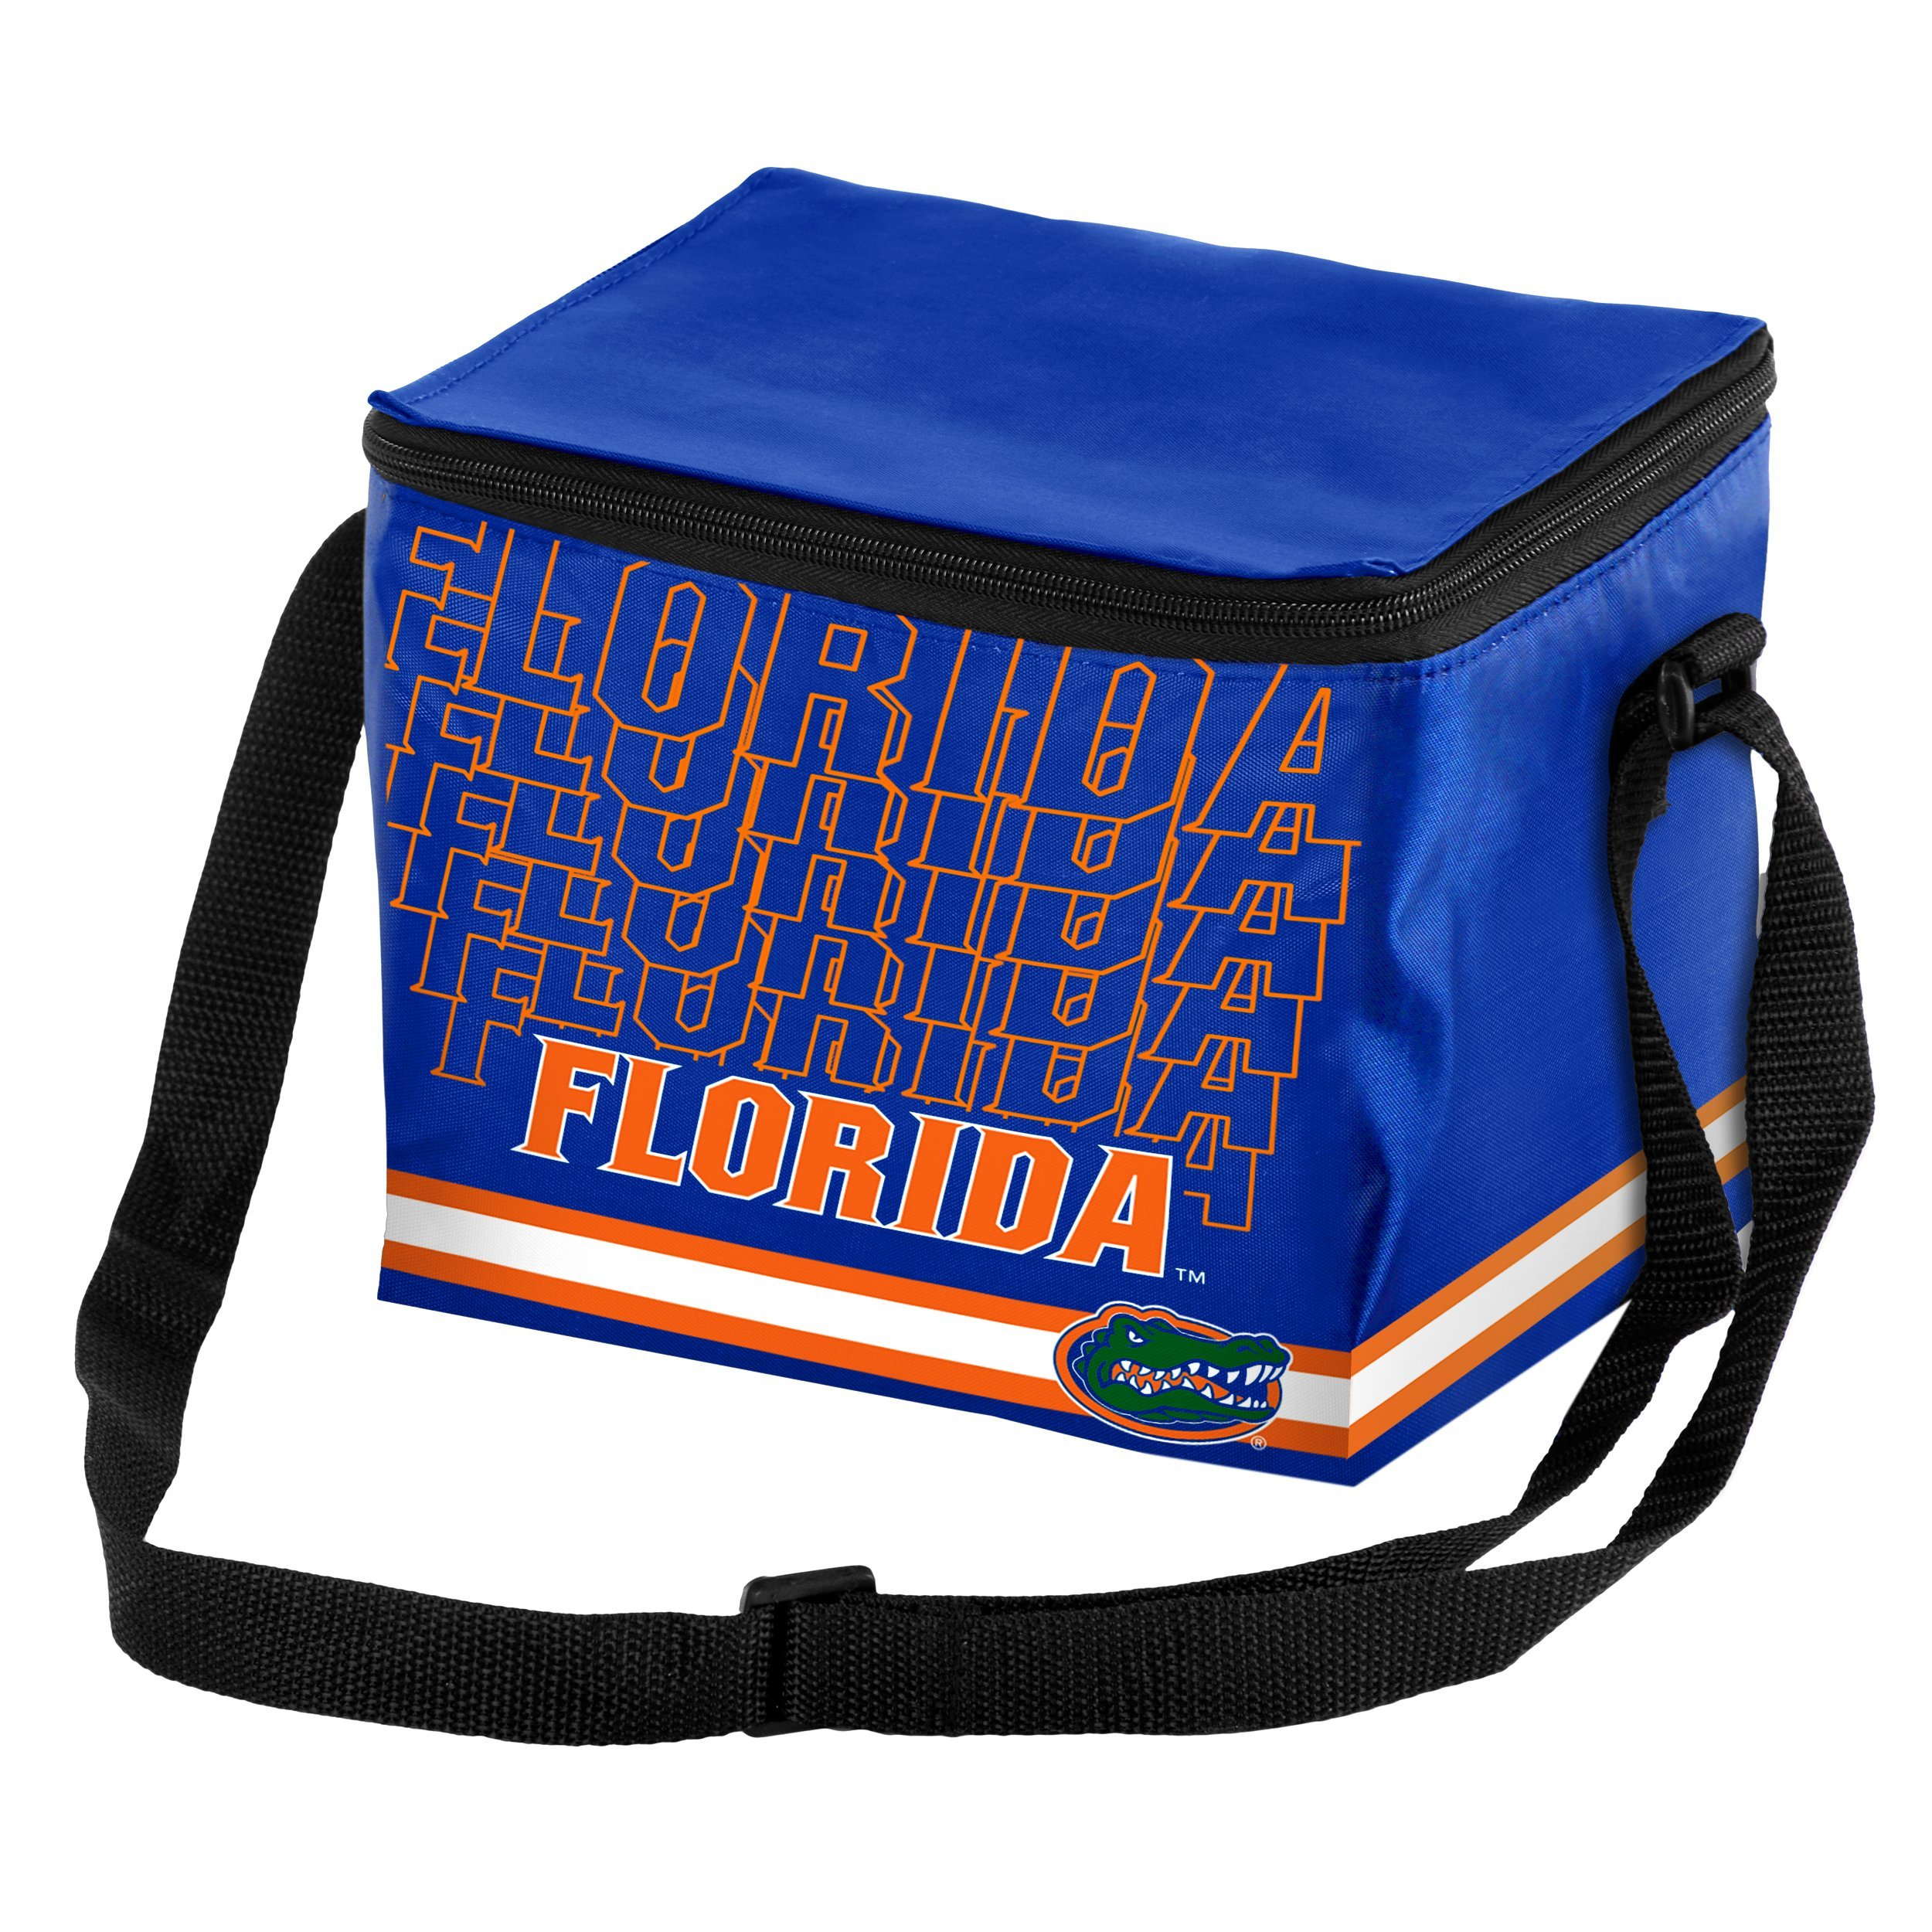 FOCO Florida Impact 6 Pack Cooler by FOCO